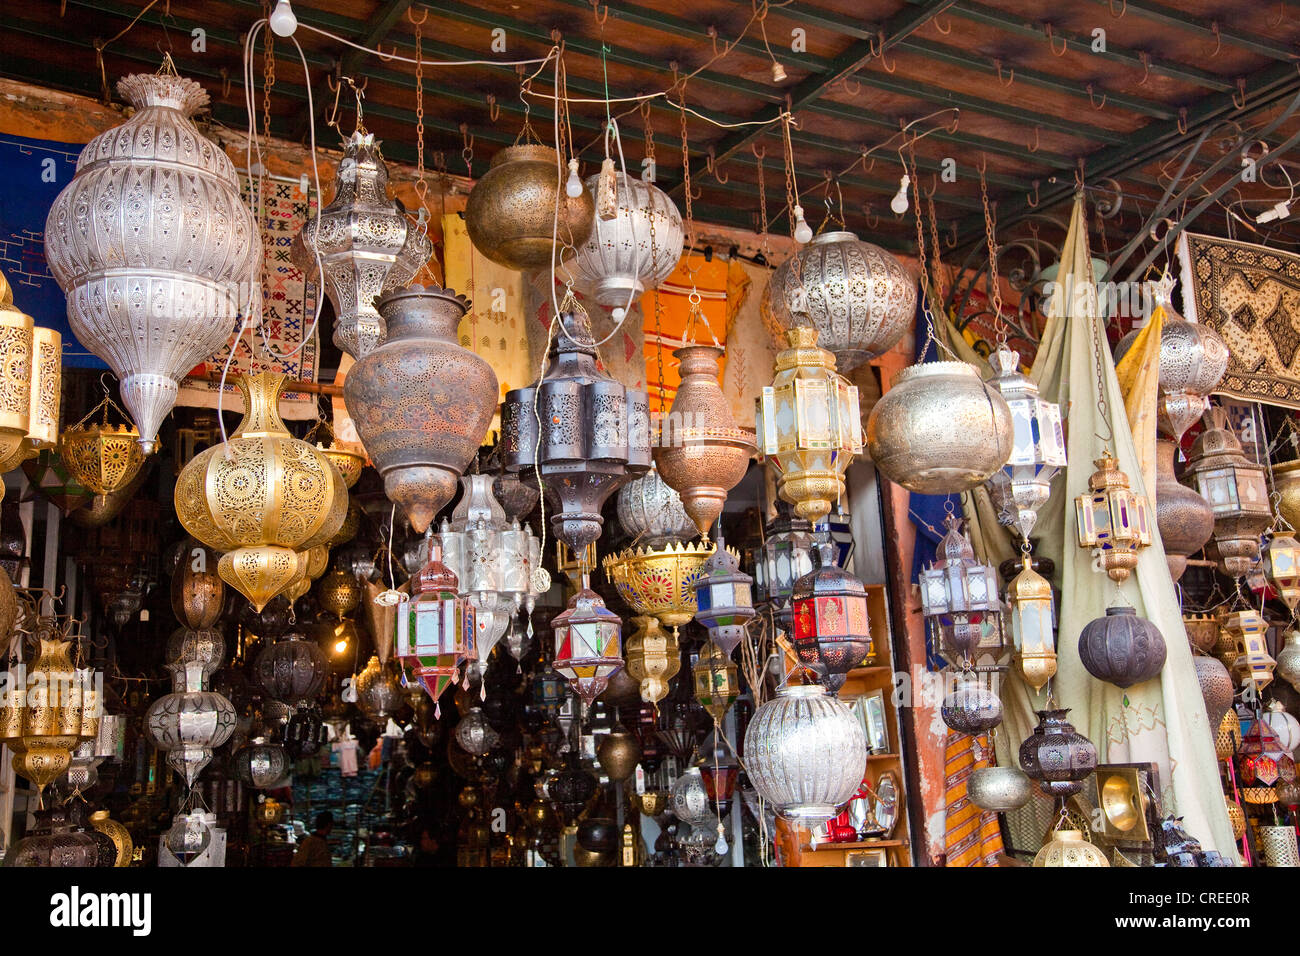 Moroccan lamps and lanterns made of sheet metal and wrought iron in the souk, market, in the Medina - Stock Image